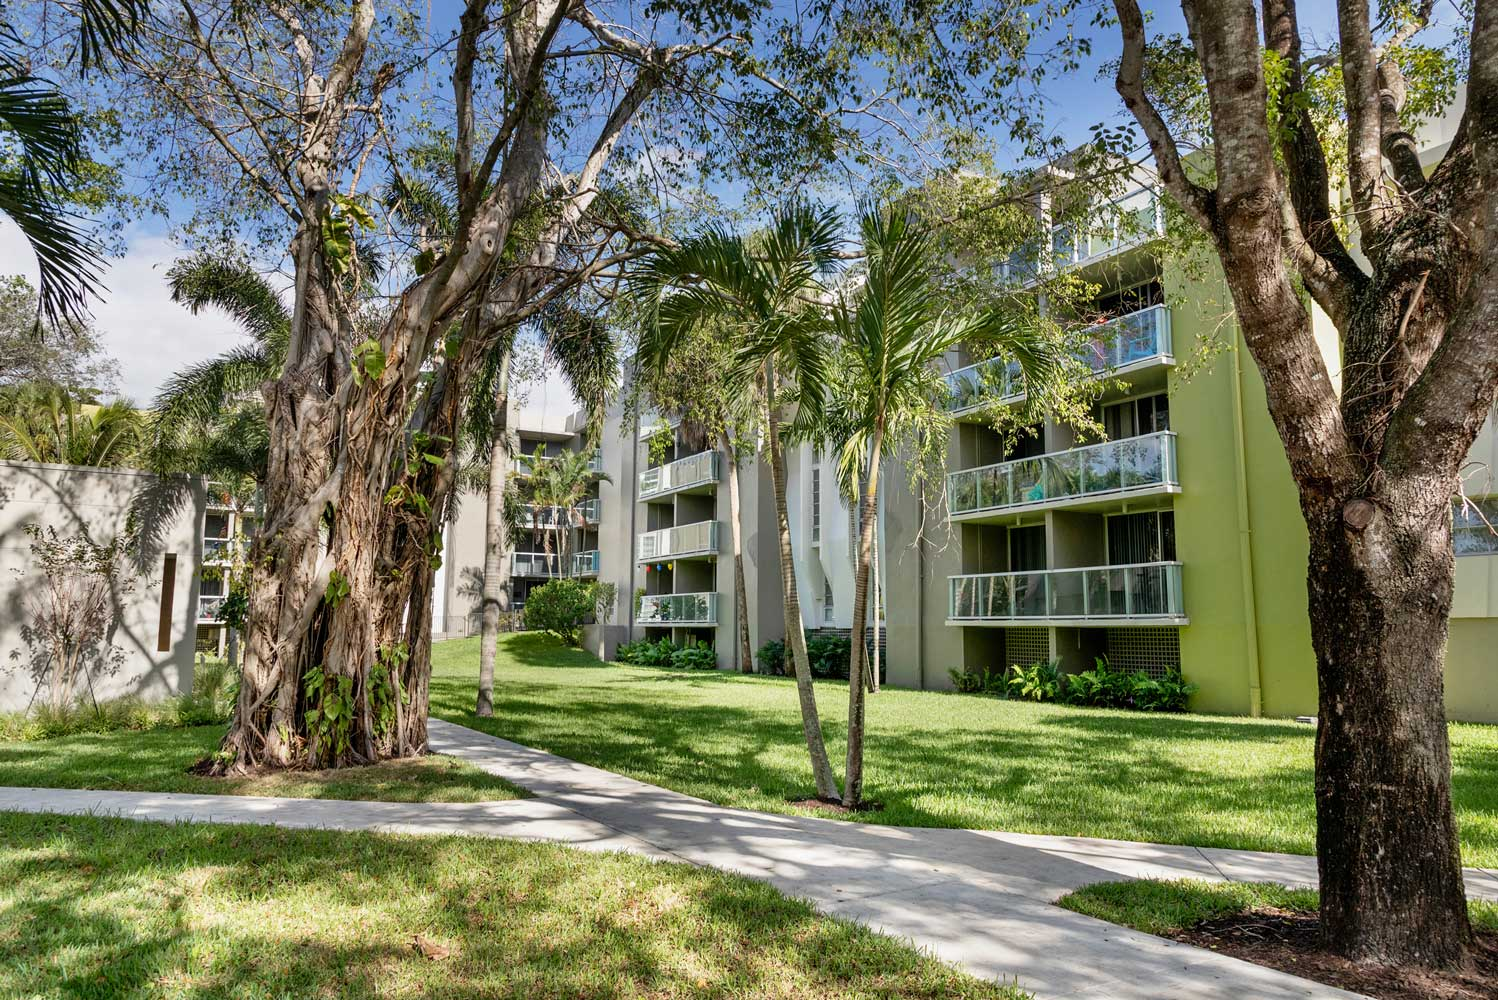 Apartment Home with Balconies at Nottingham Pine Apartments in Plantation, FL